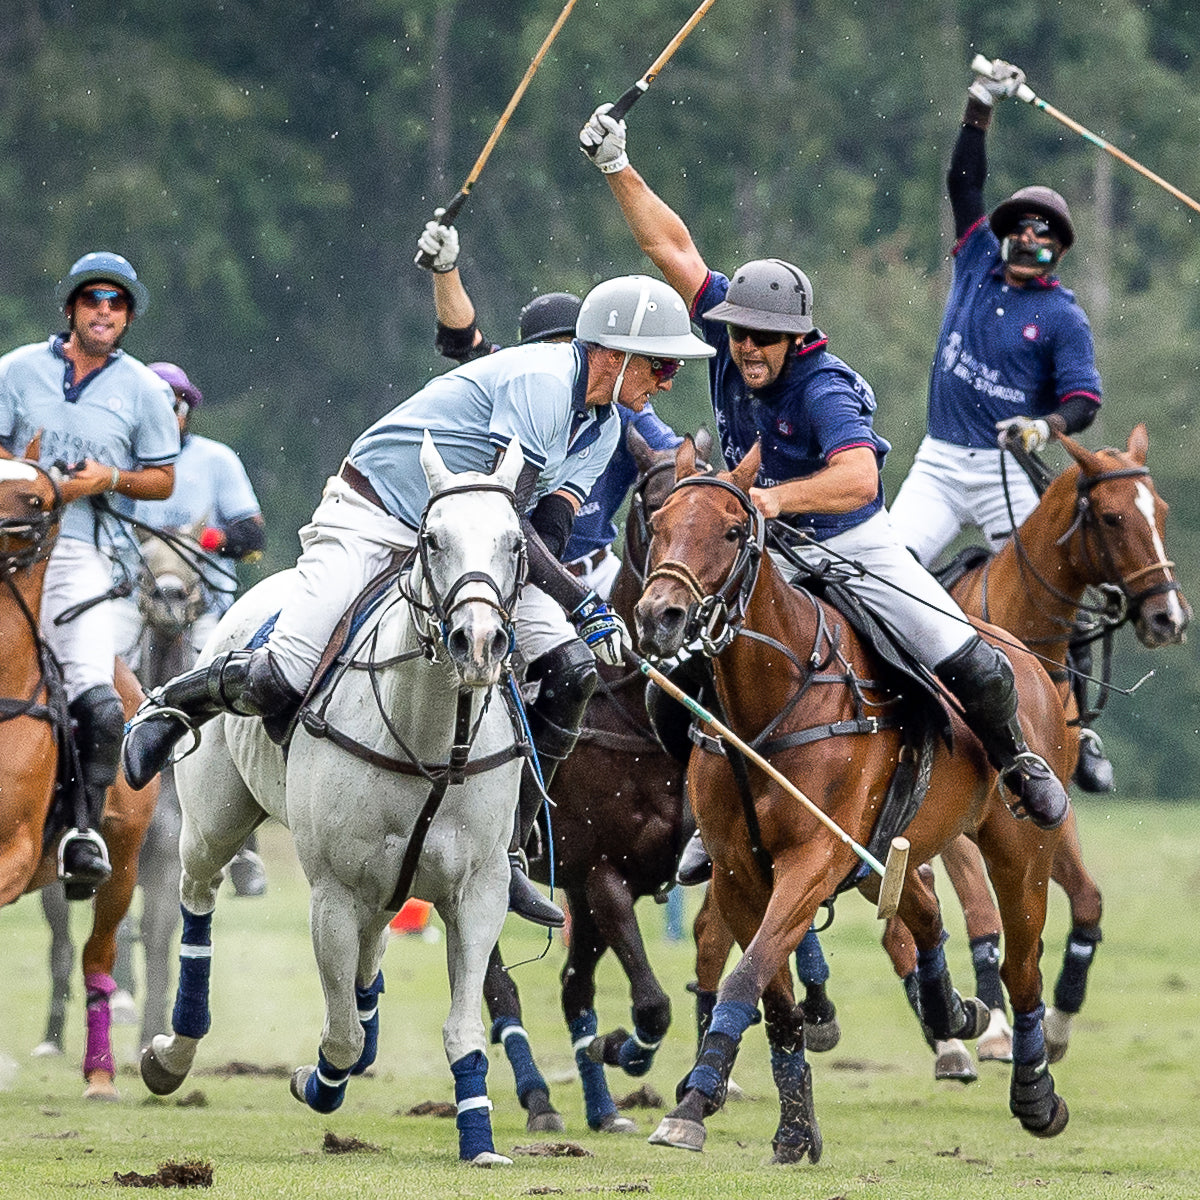 KA/NOA newsletter, August 2019 -- Polo, polos and tango!